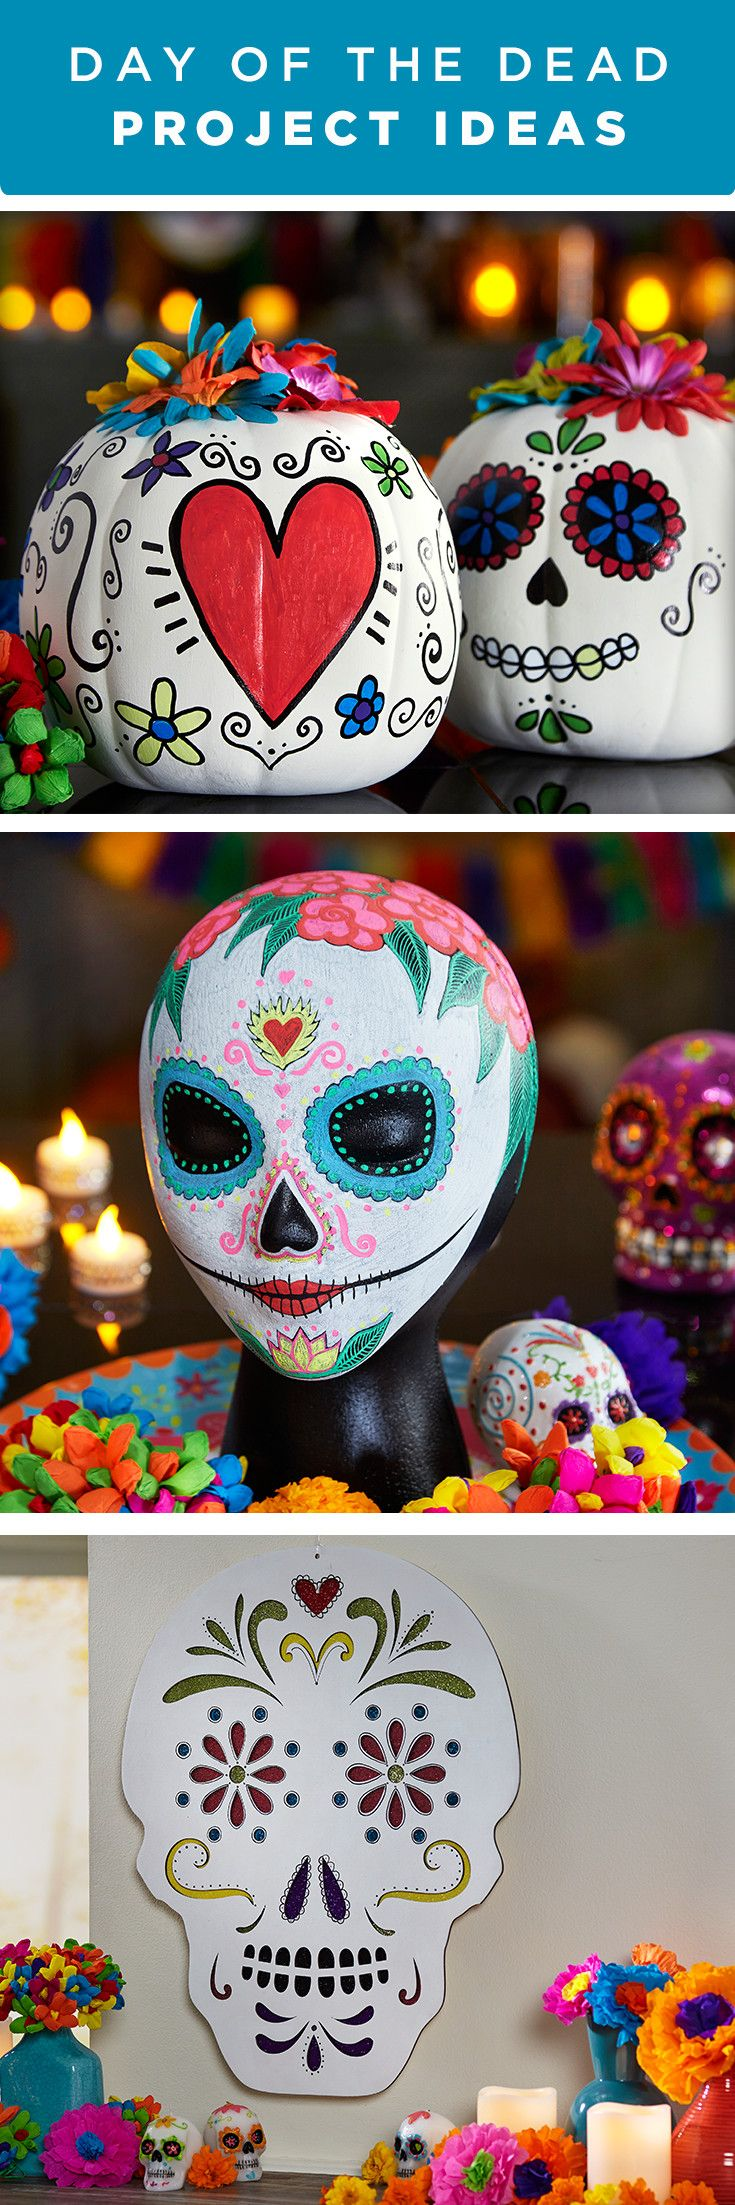 celebrate dia de los muertos with colorful day of the dead project ideas find everything - Michaels Halloween